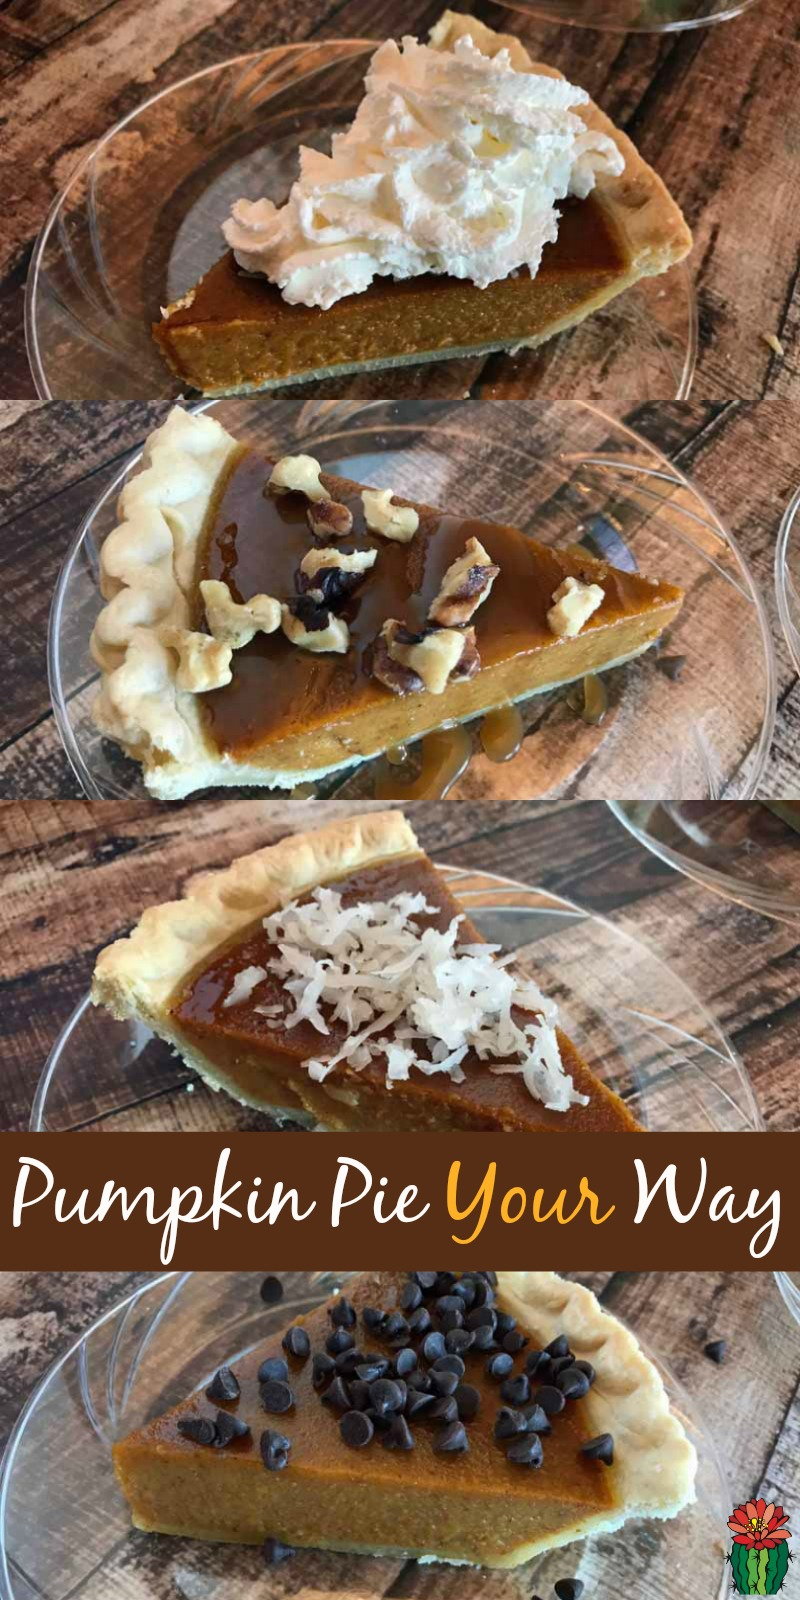 Ready to serve an extra special fall dessert idea with minimal effort? Make a pumpkin pie toppings bar, everyone can eat pie their own way.